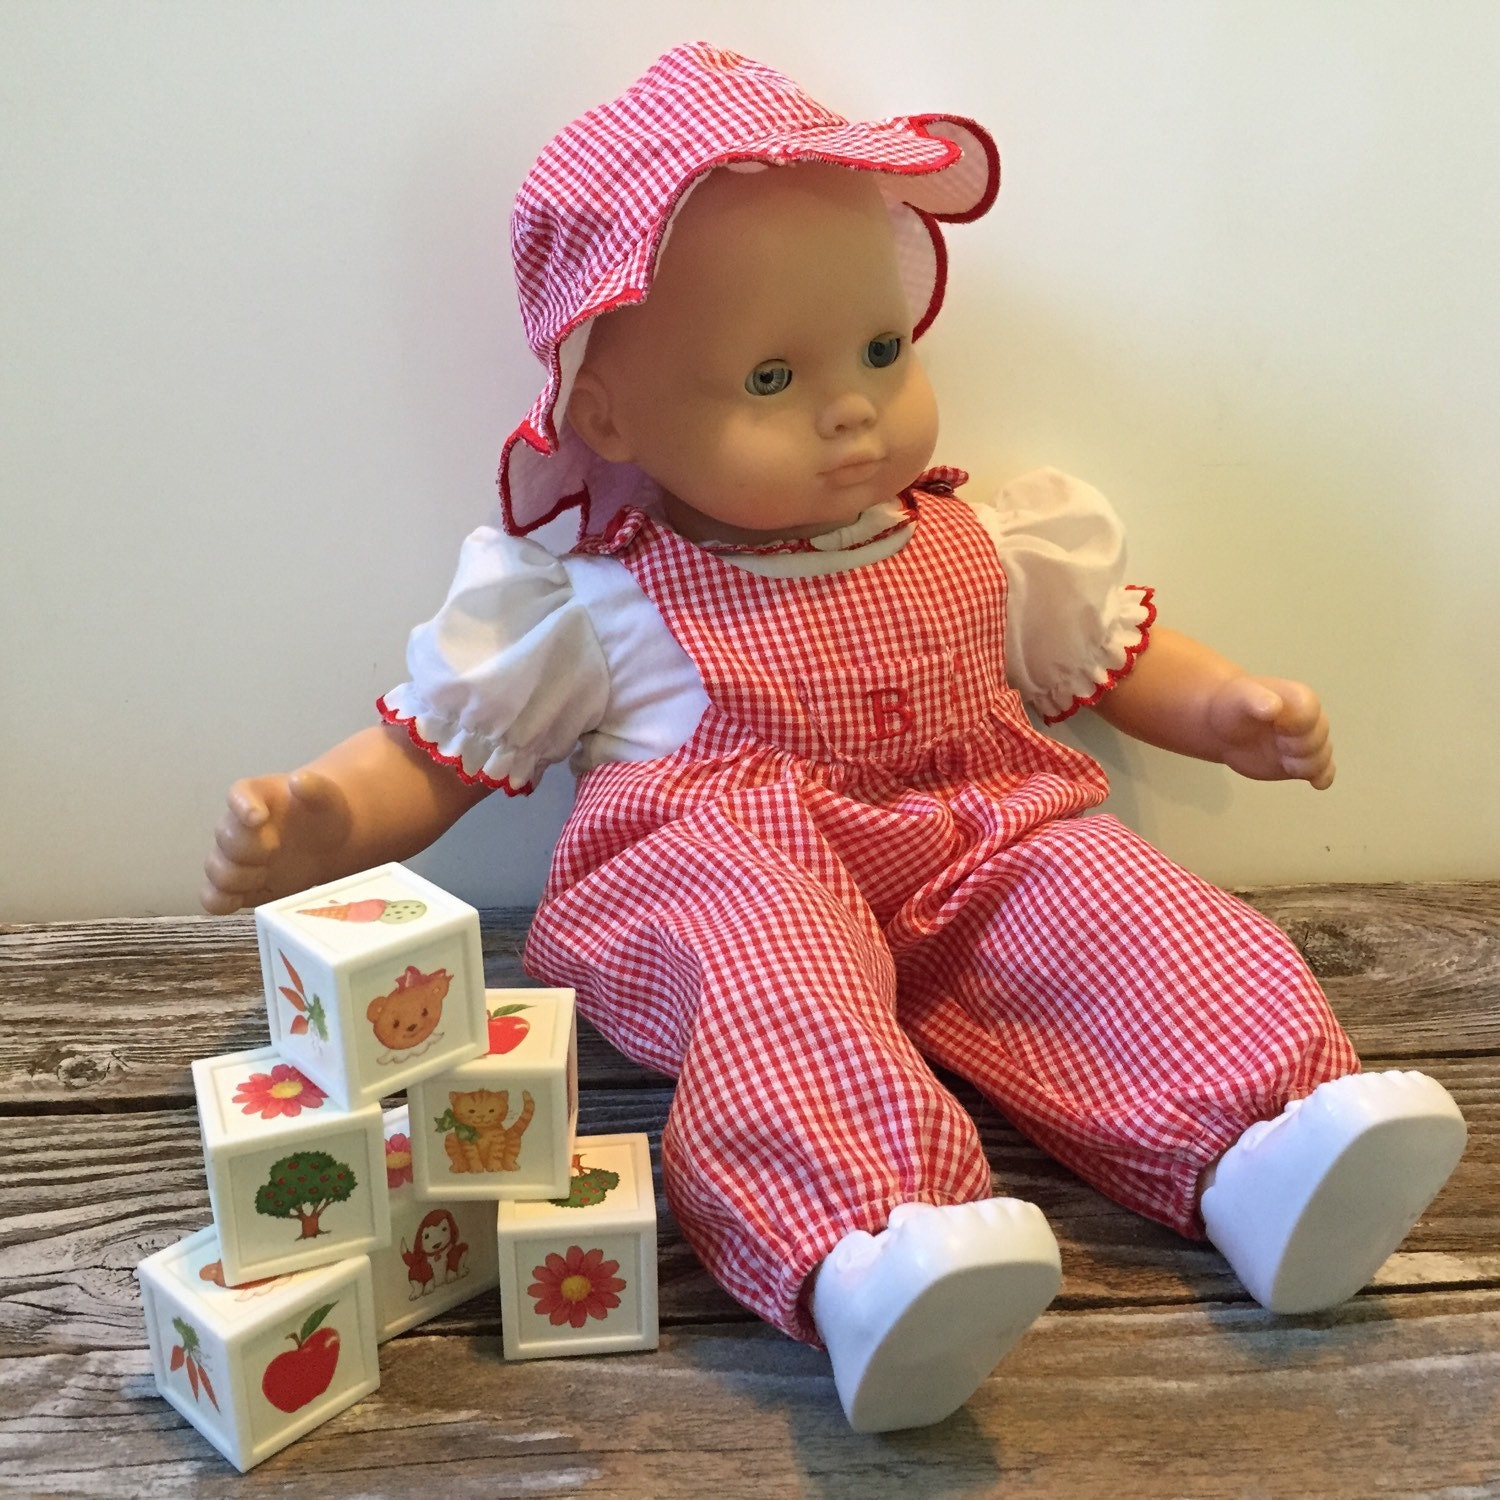 Vintage 1995 Bitty Baby Doll Fun in the Sun Outfit by